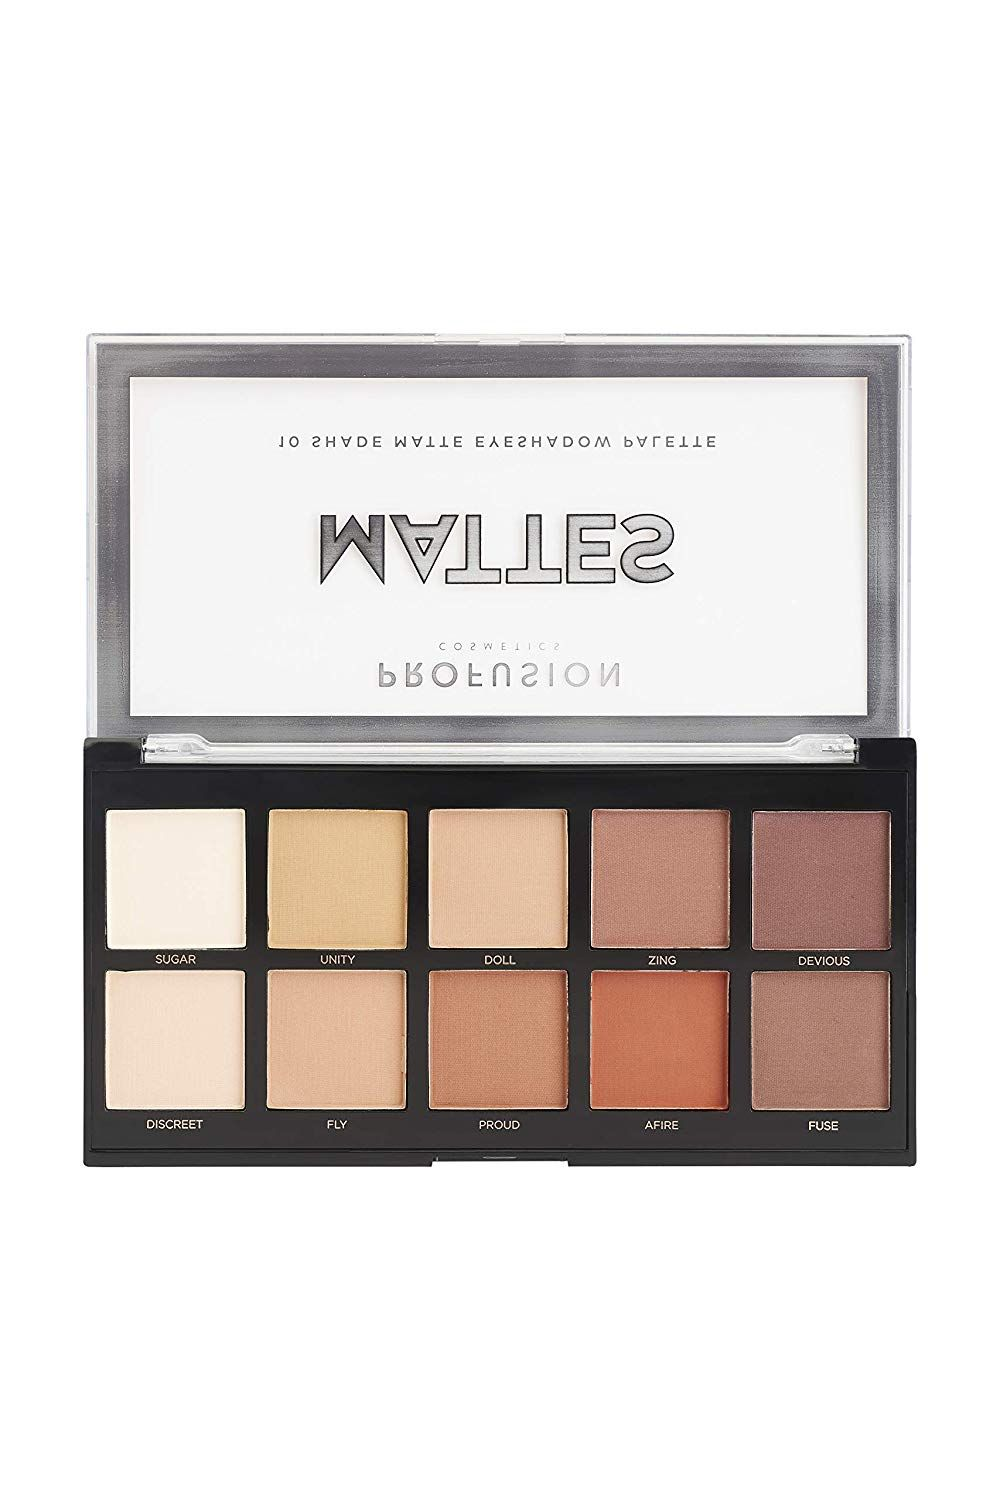 Best Nude Makeup and Eyeshadow Palettes for a Pretty